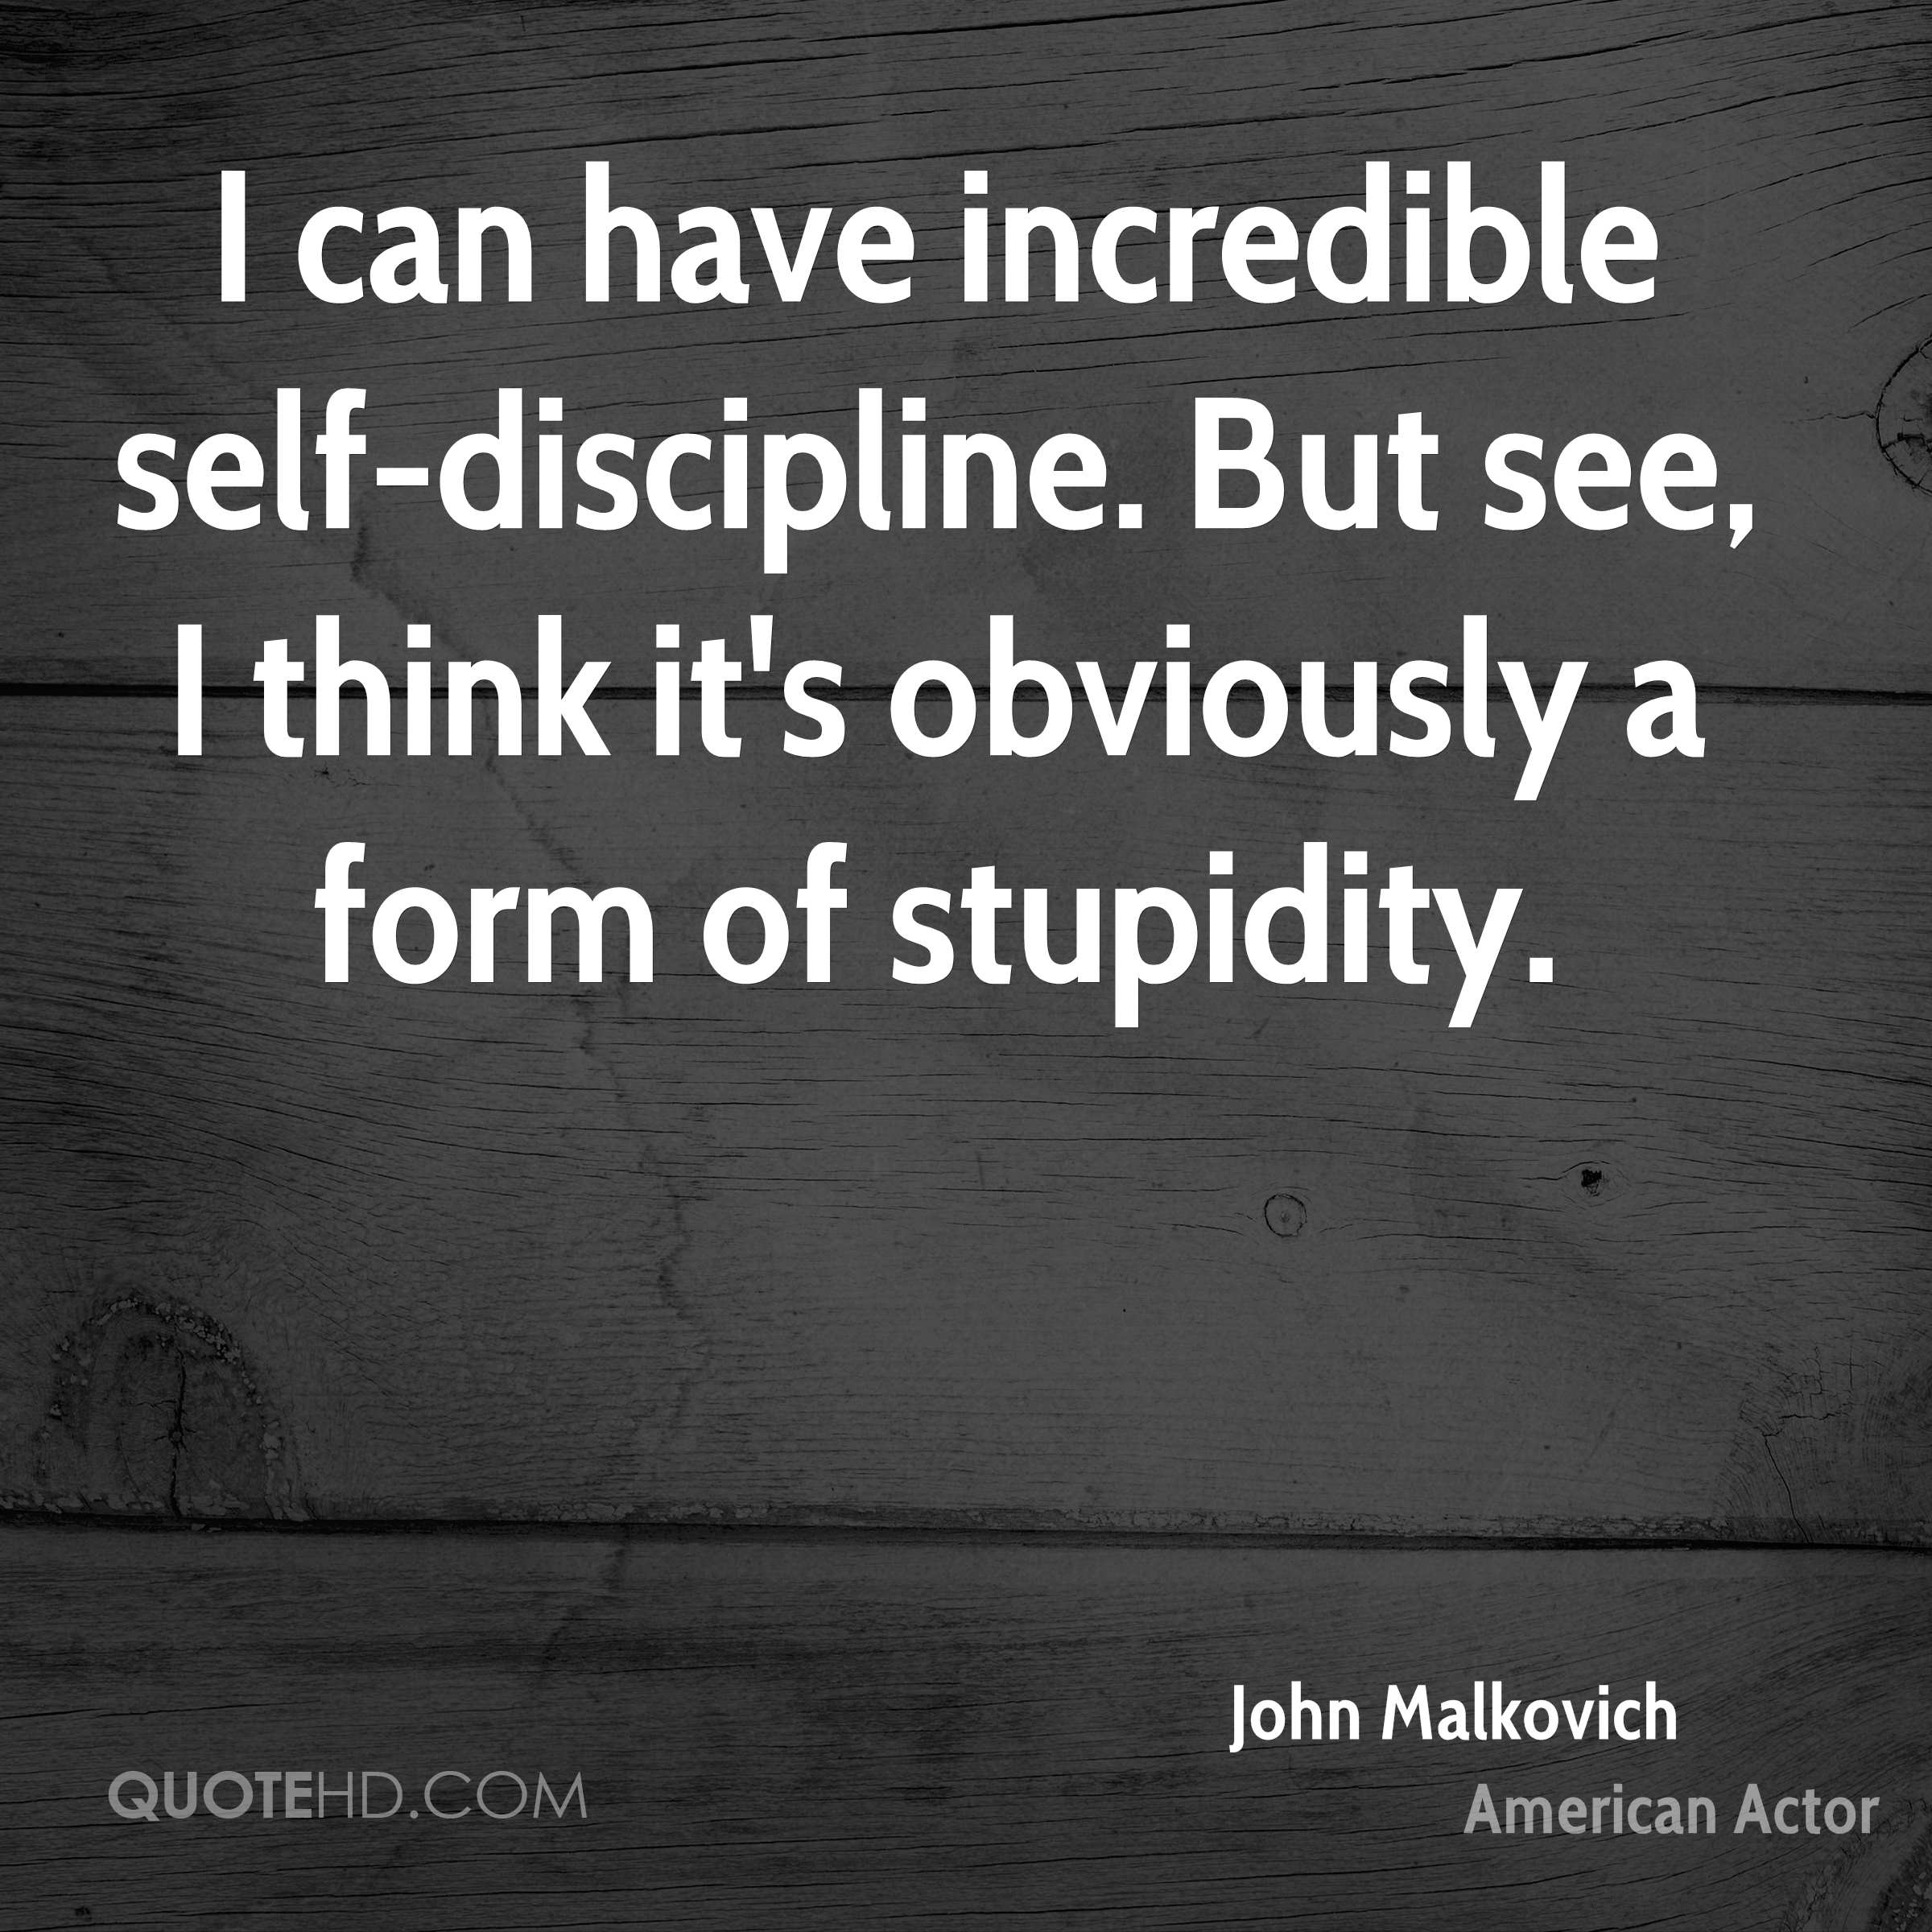 I can have incredible self-discipline. But see, I think it's obviously a form of stupidity.